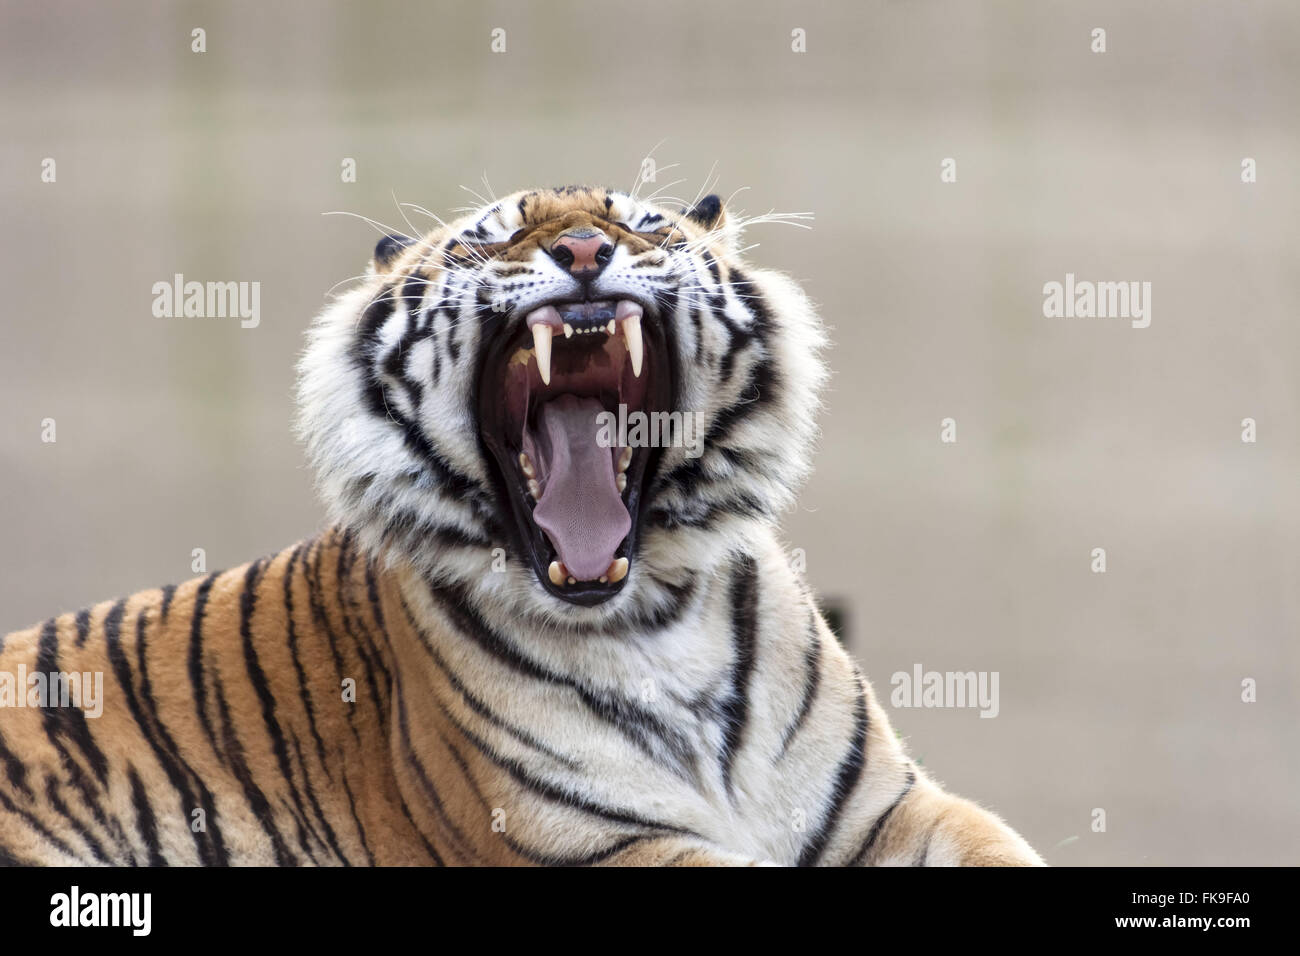 Roaring tiger - the city zoo founded in 1932 - maintained by Hermann Foundation Weege - Stock Image